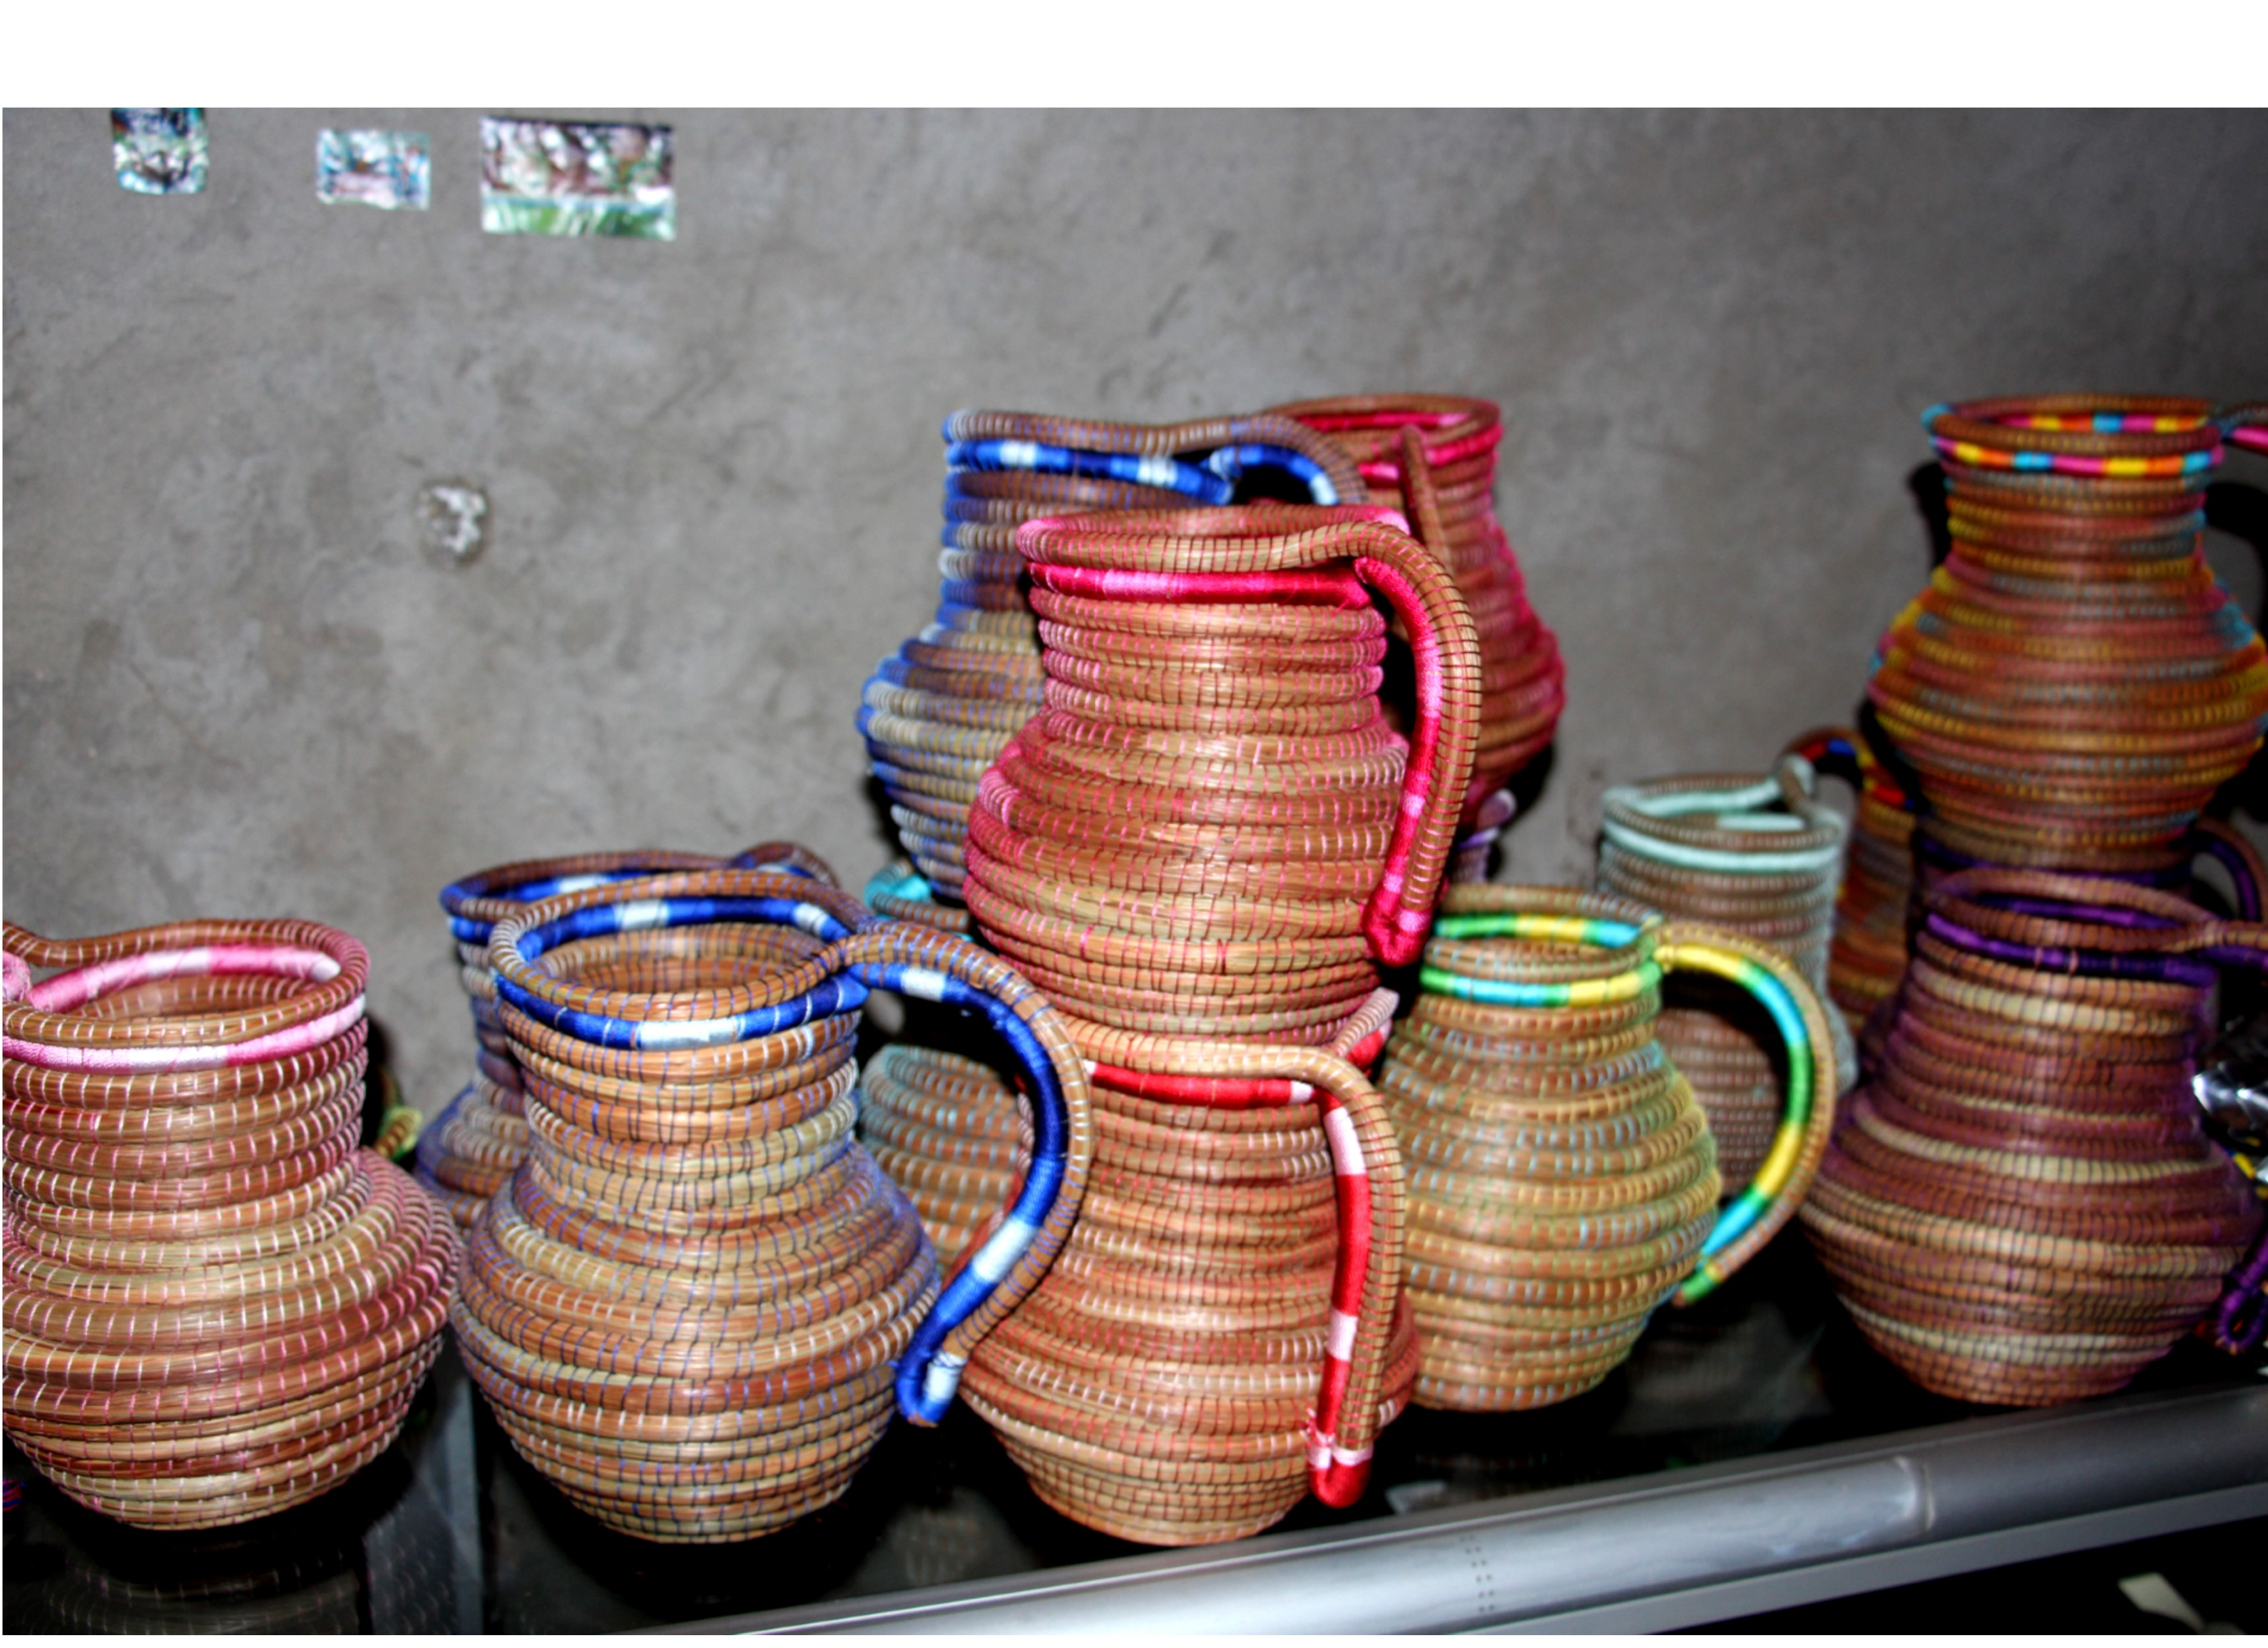 Traditional hand-woven baskets made by programme beneficiaries